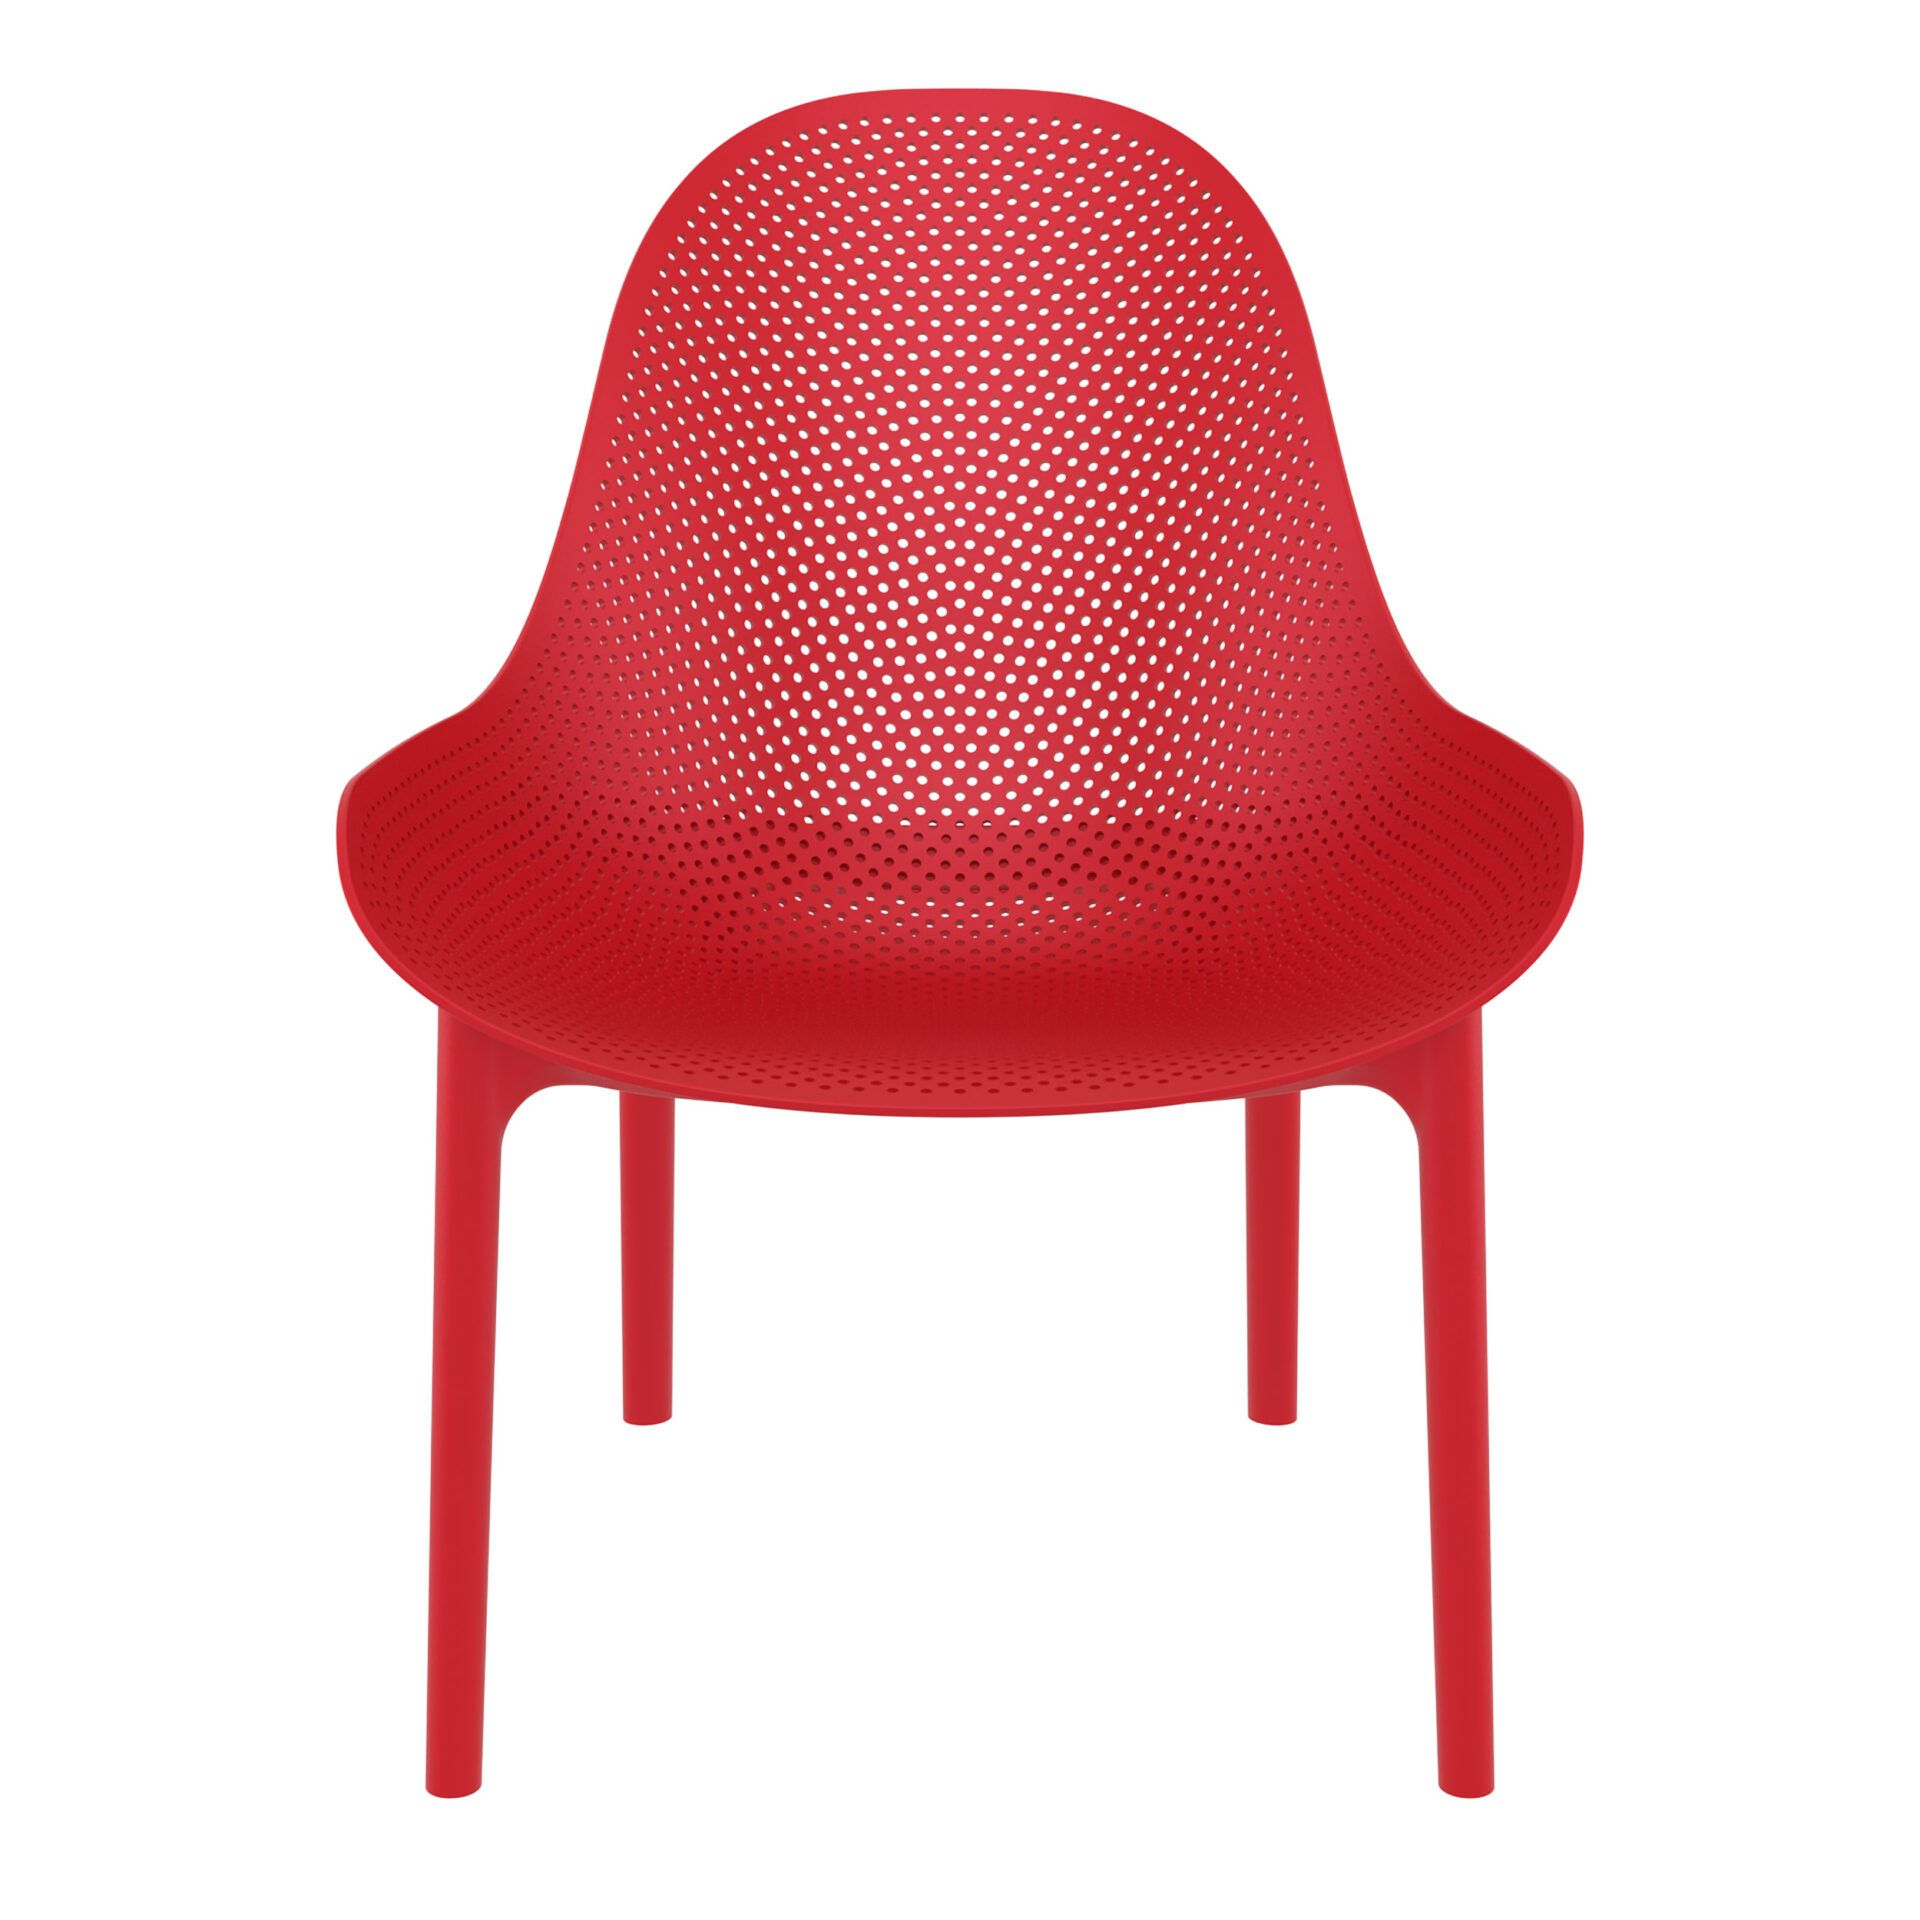 outdoor seating polypropylene sky lounge red front